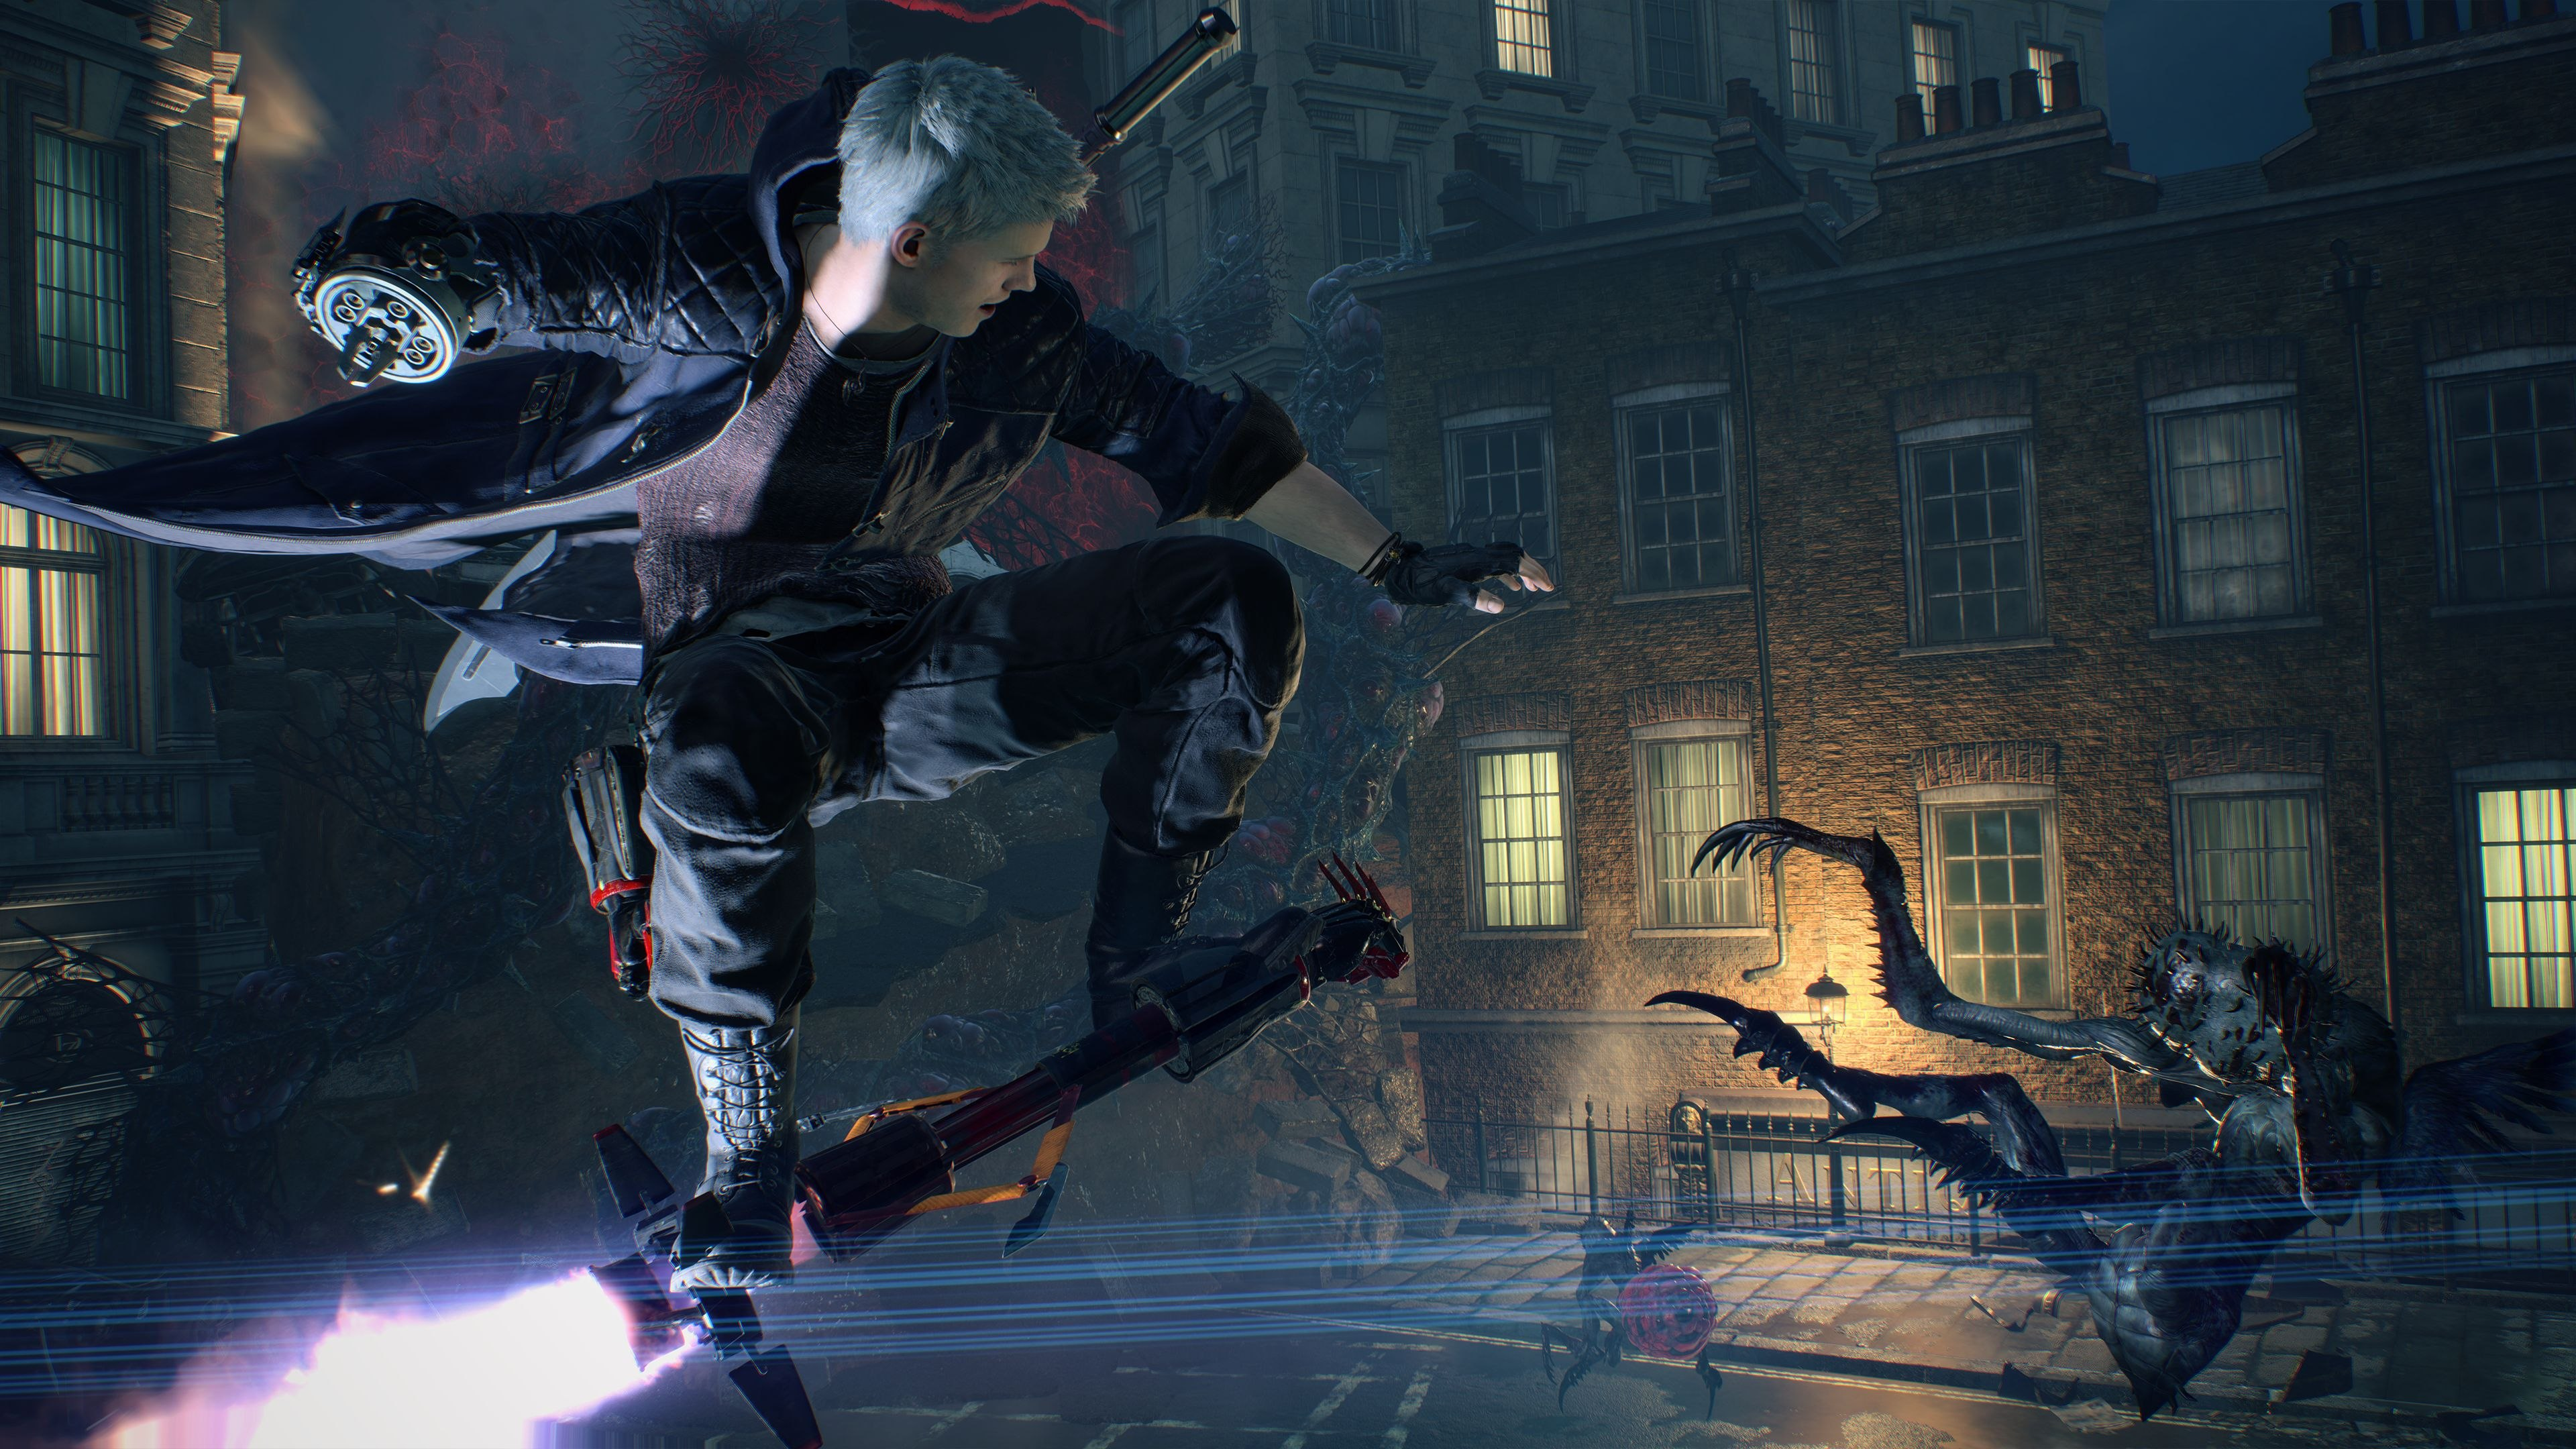 Devil May Cry 5 Hd Wallpapers Posted By Samantha Sellers